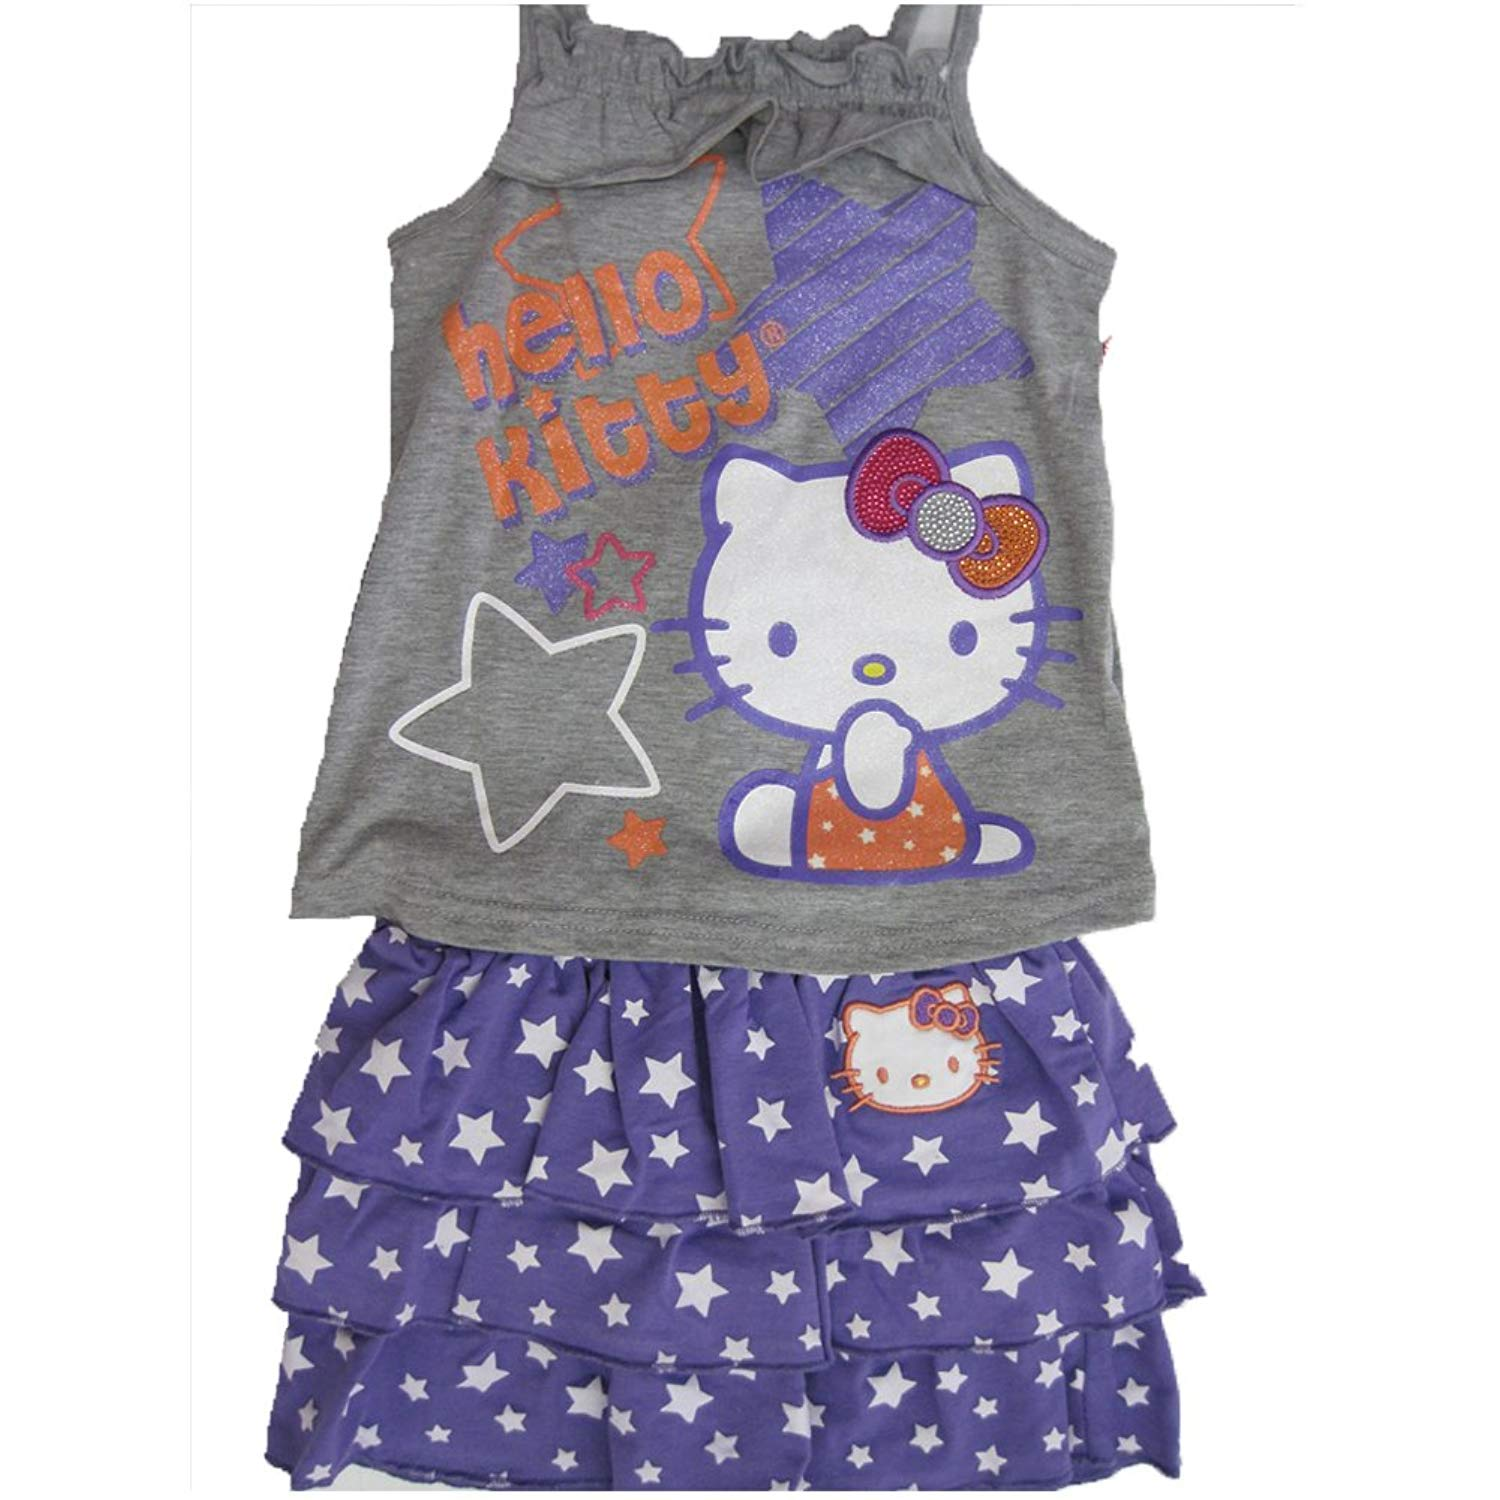 de5b24bc3 Get Quotations · Hello Kitty Gray Purple Star Patterned Tiered 2 Pc Skirt  Outfit 4-6X